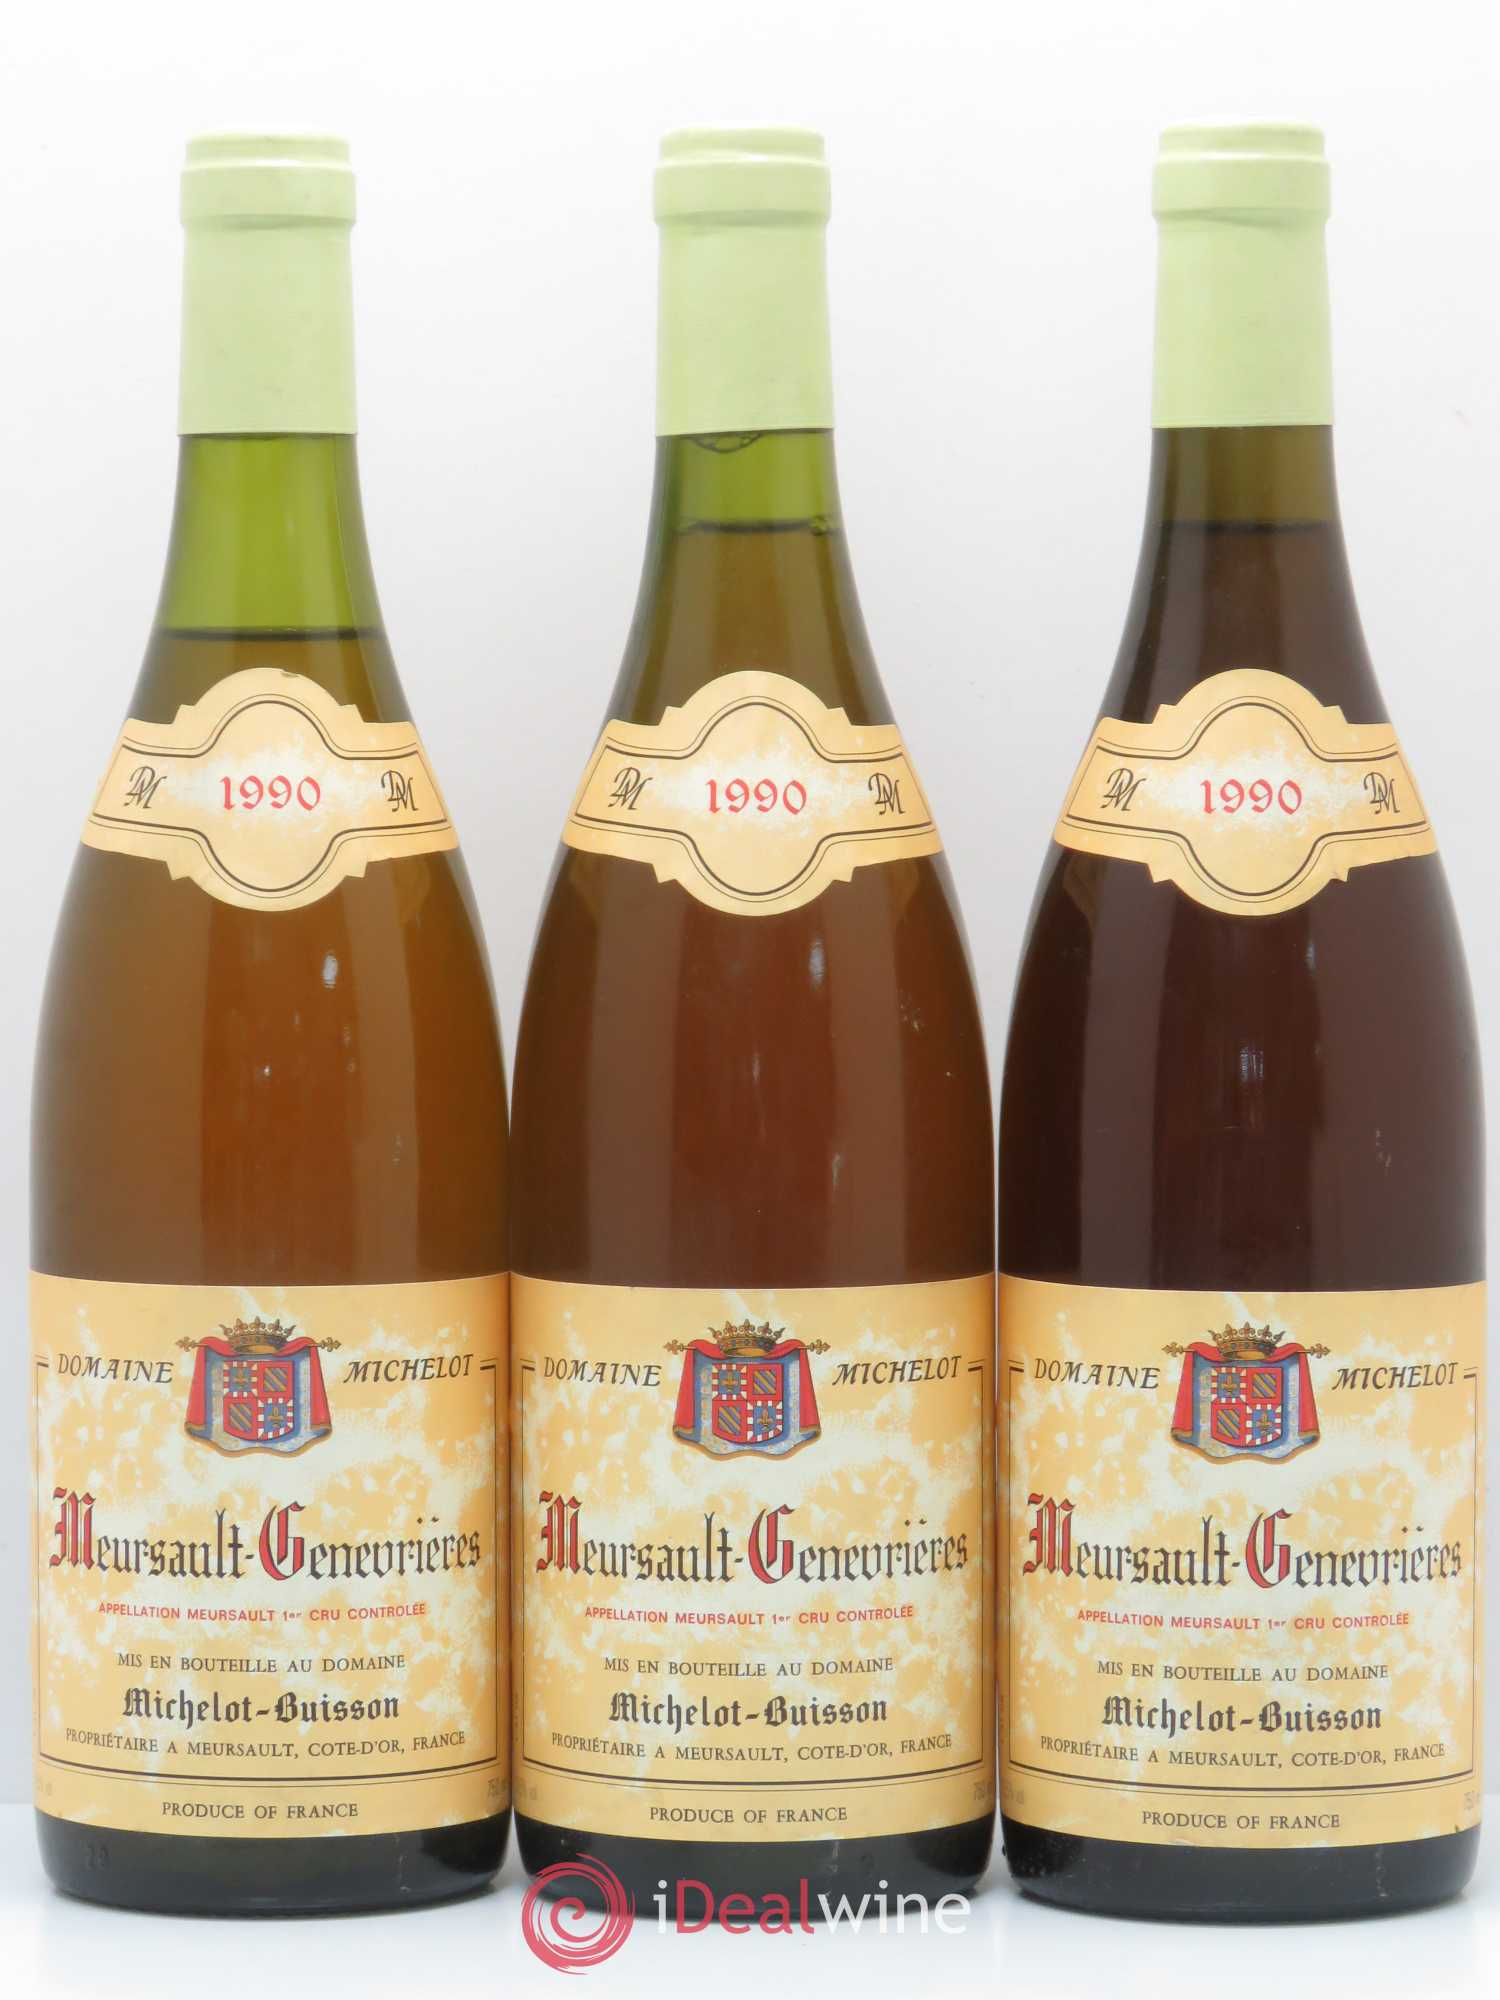 Meursault 1er Cru Genevrières Michelot-Buisson 1990 - Lot of 3 Bottles